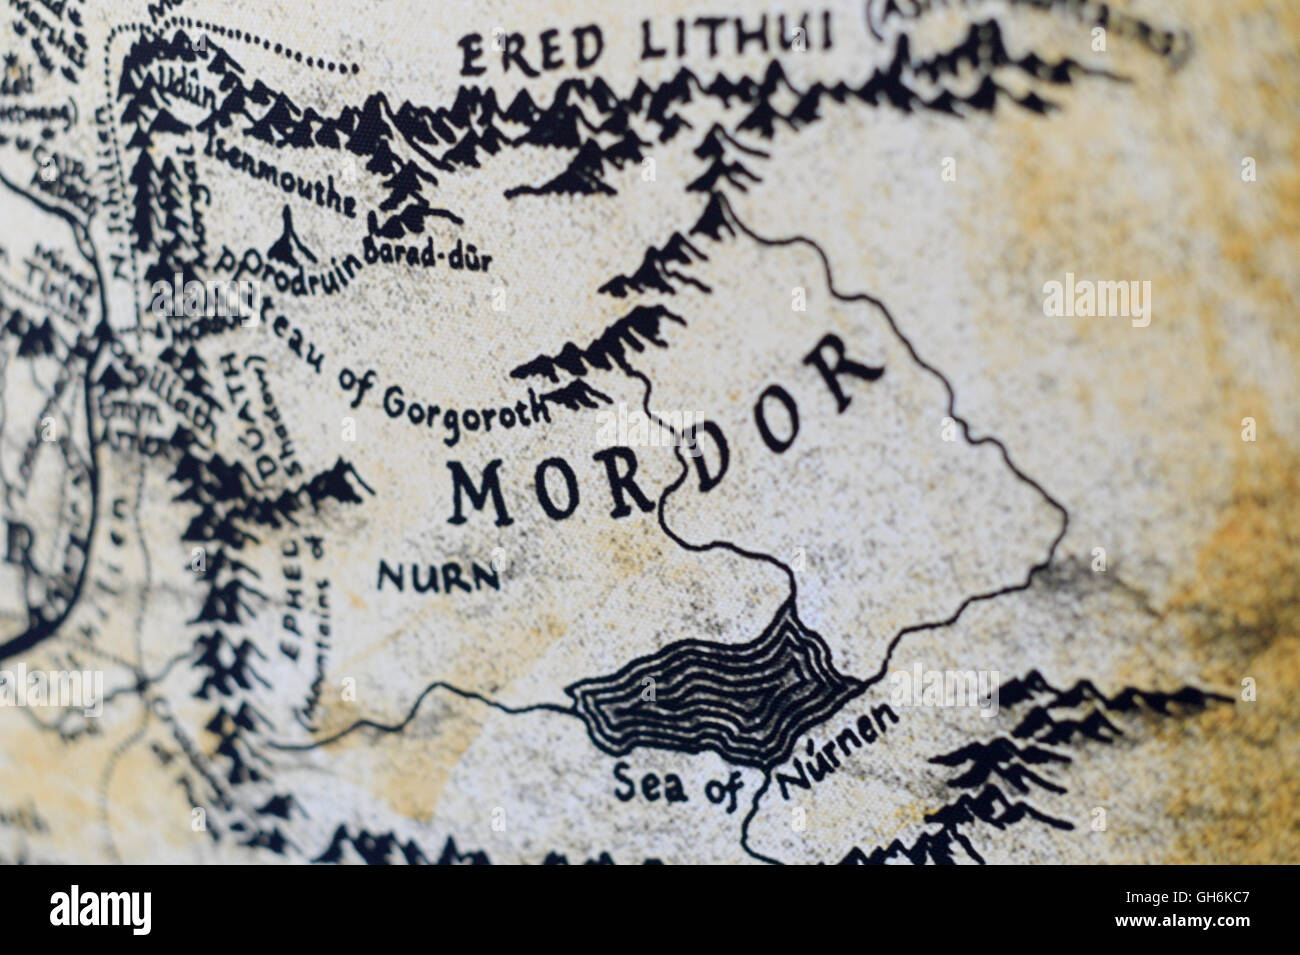 Map Of Mordor Map of Mordor from the Lord of the Rings by JRR Tolkien Stock